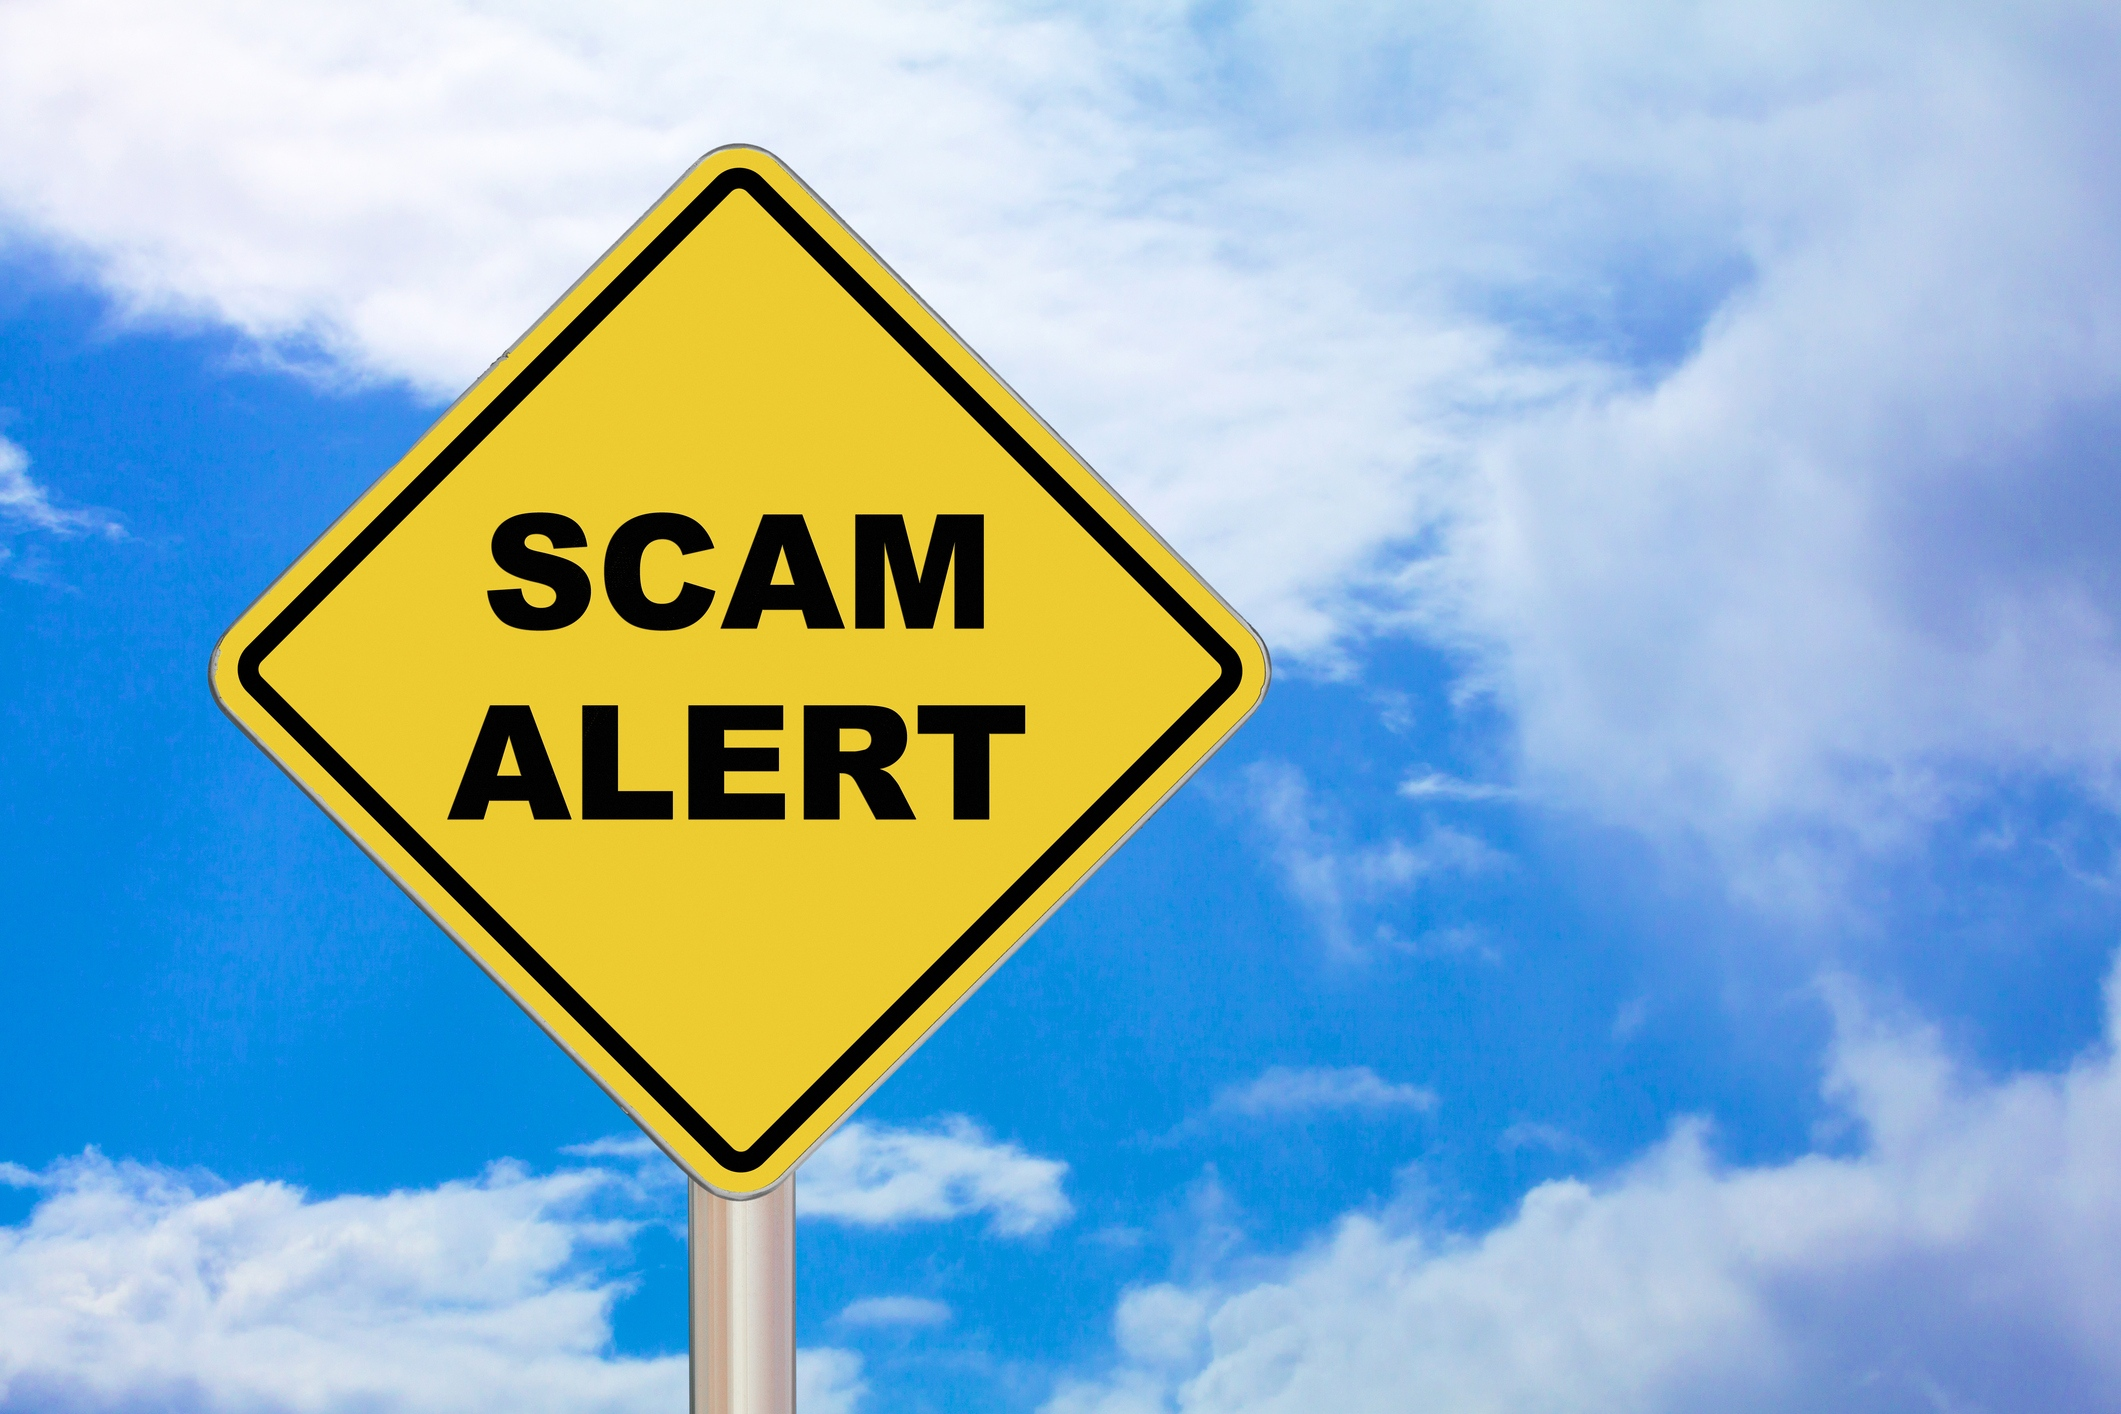 Be Cautious Of Powered Hand Truck Scam!